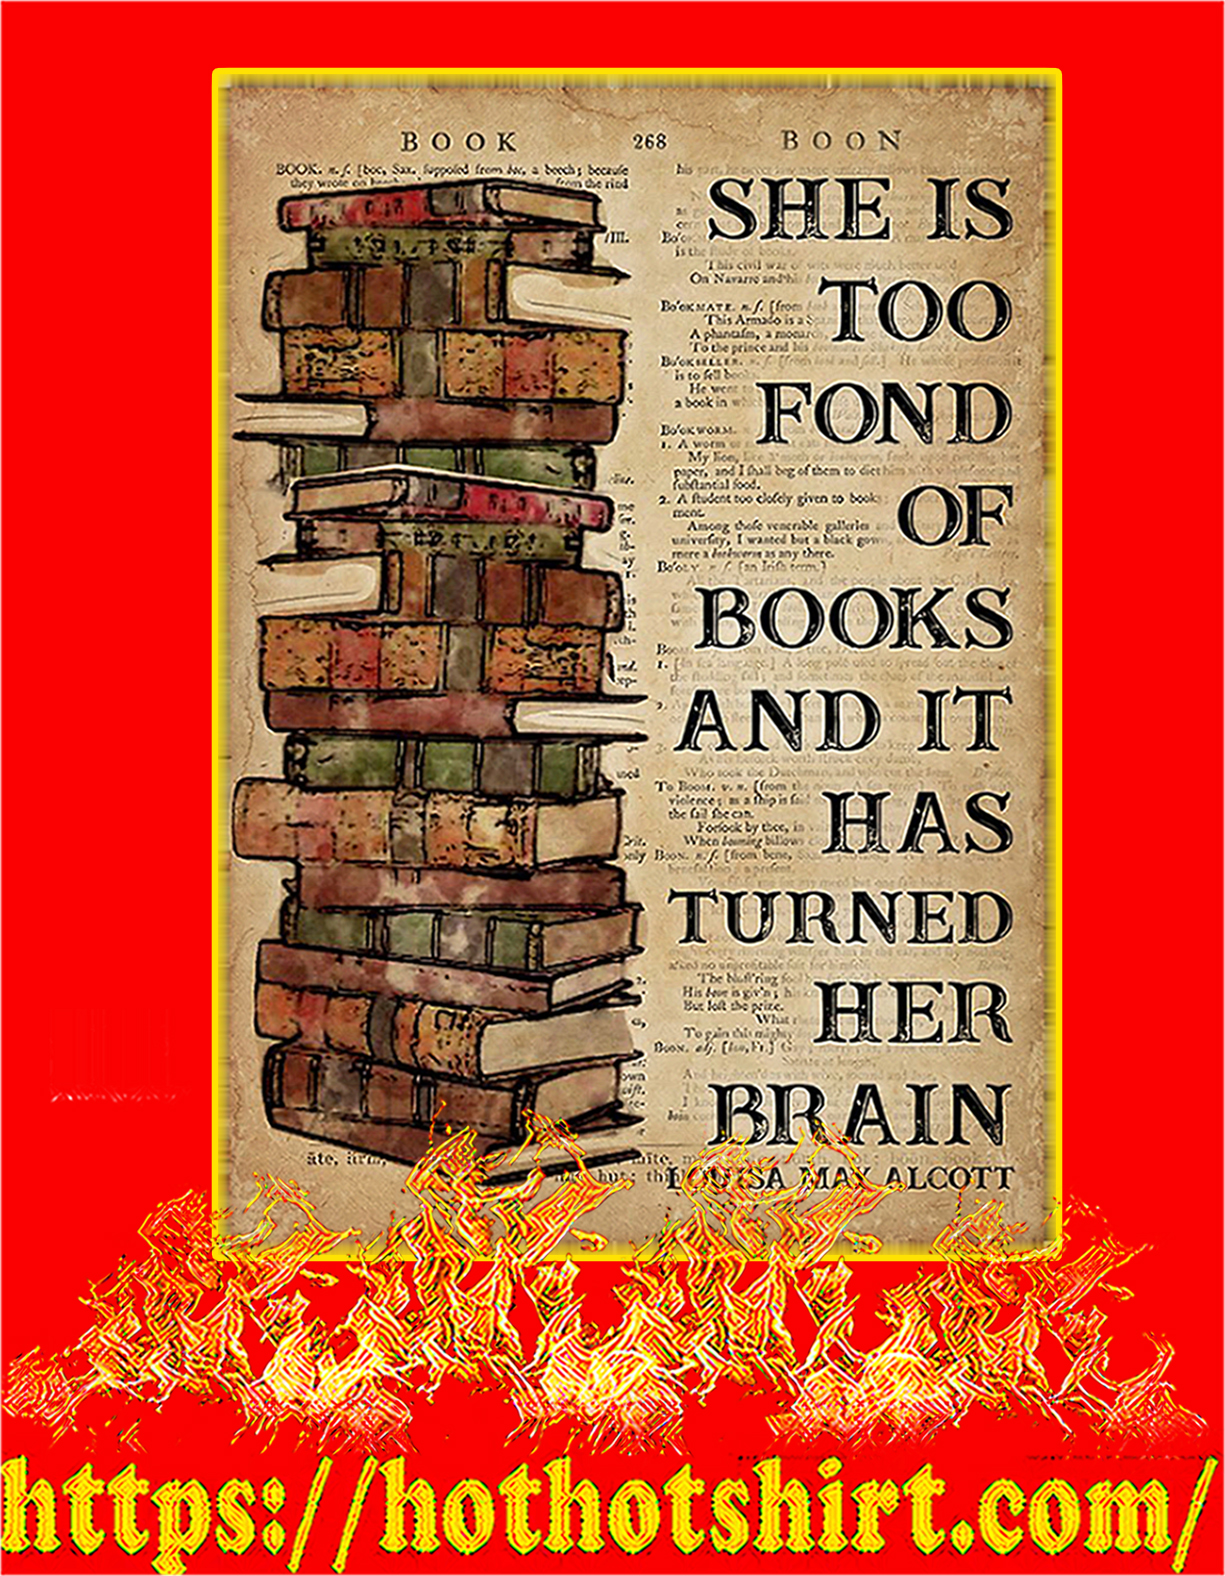 Book she is too fond of books poster - A4